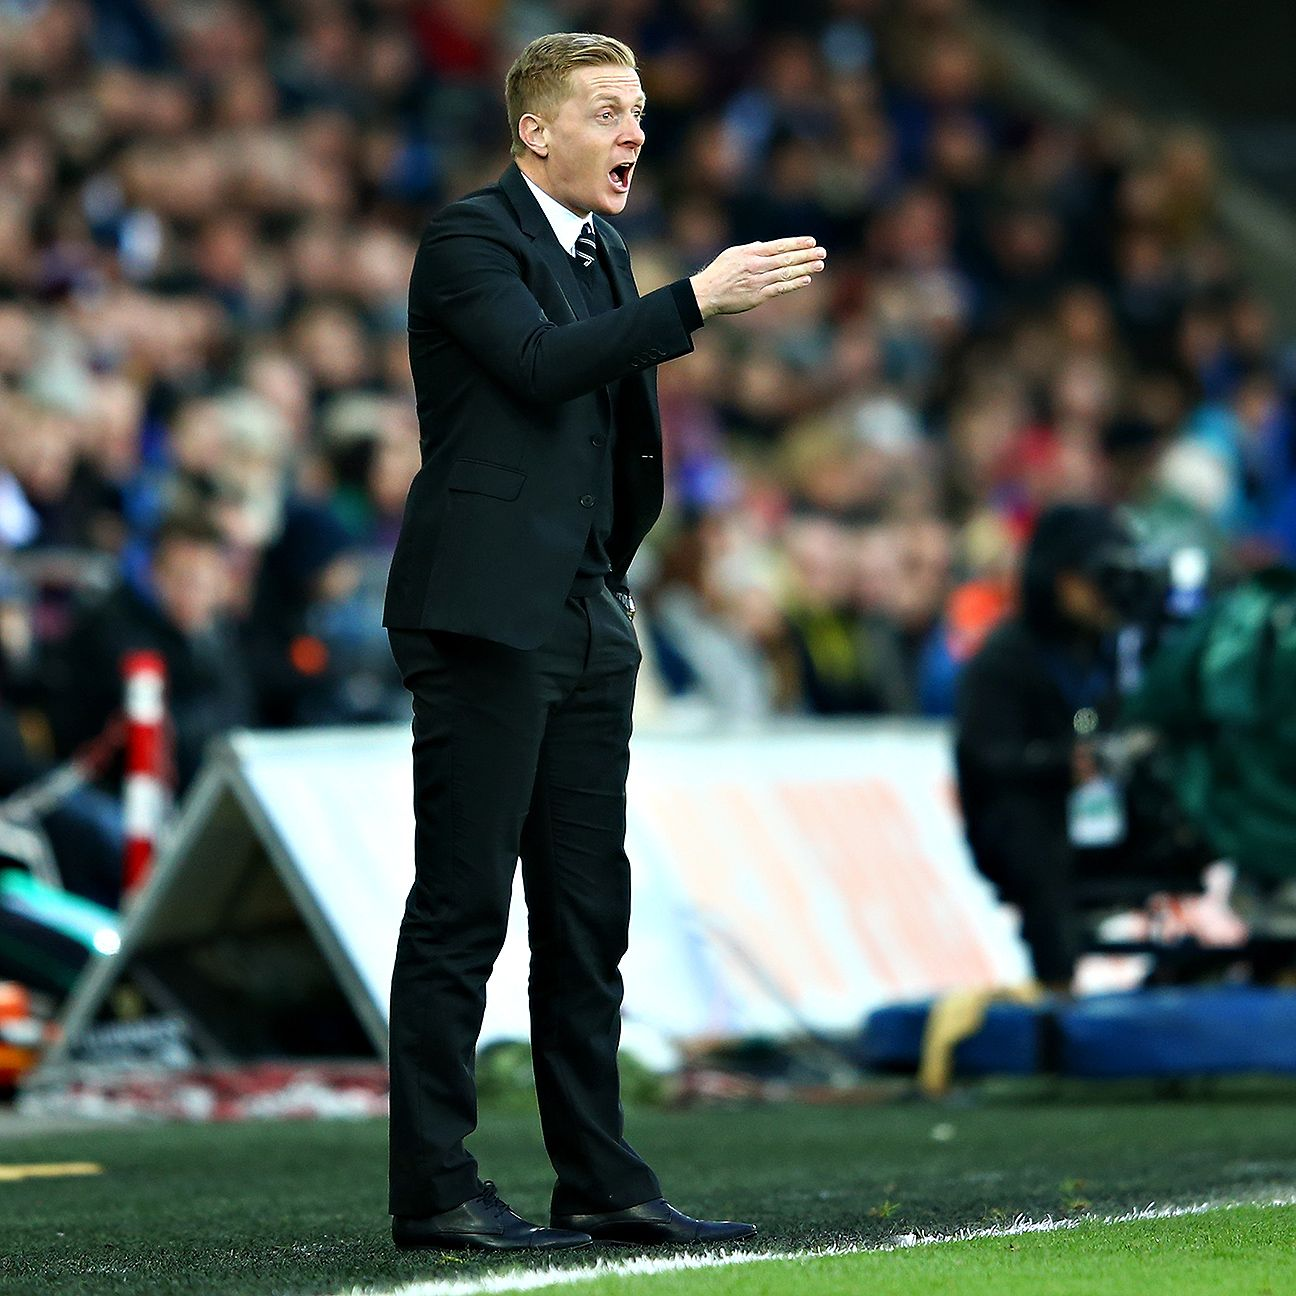 Garry Monk's Swansea have just one Premier League victory since Aug. 30.